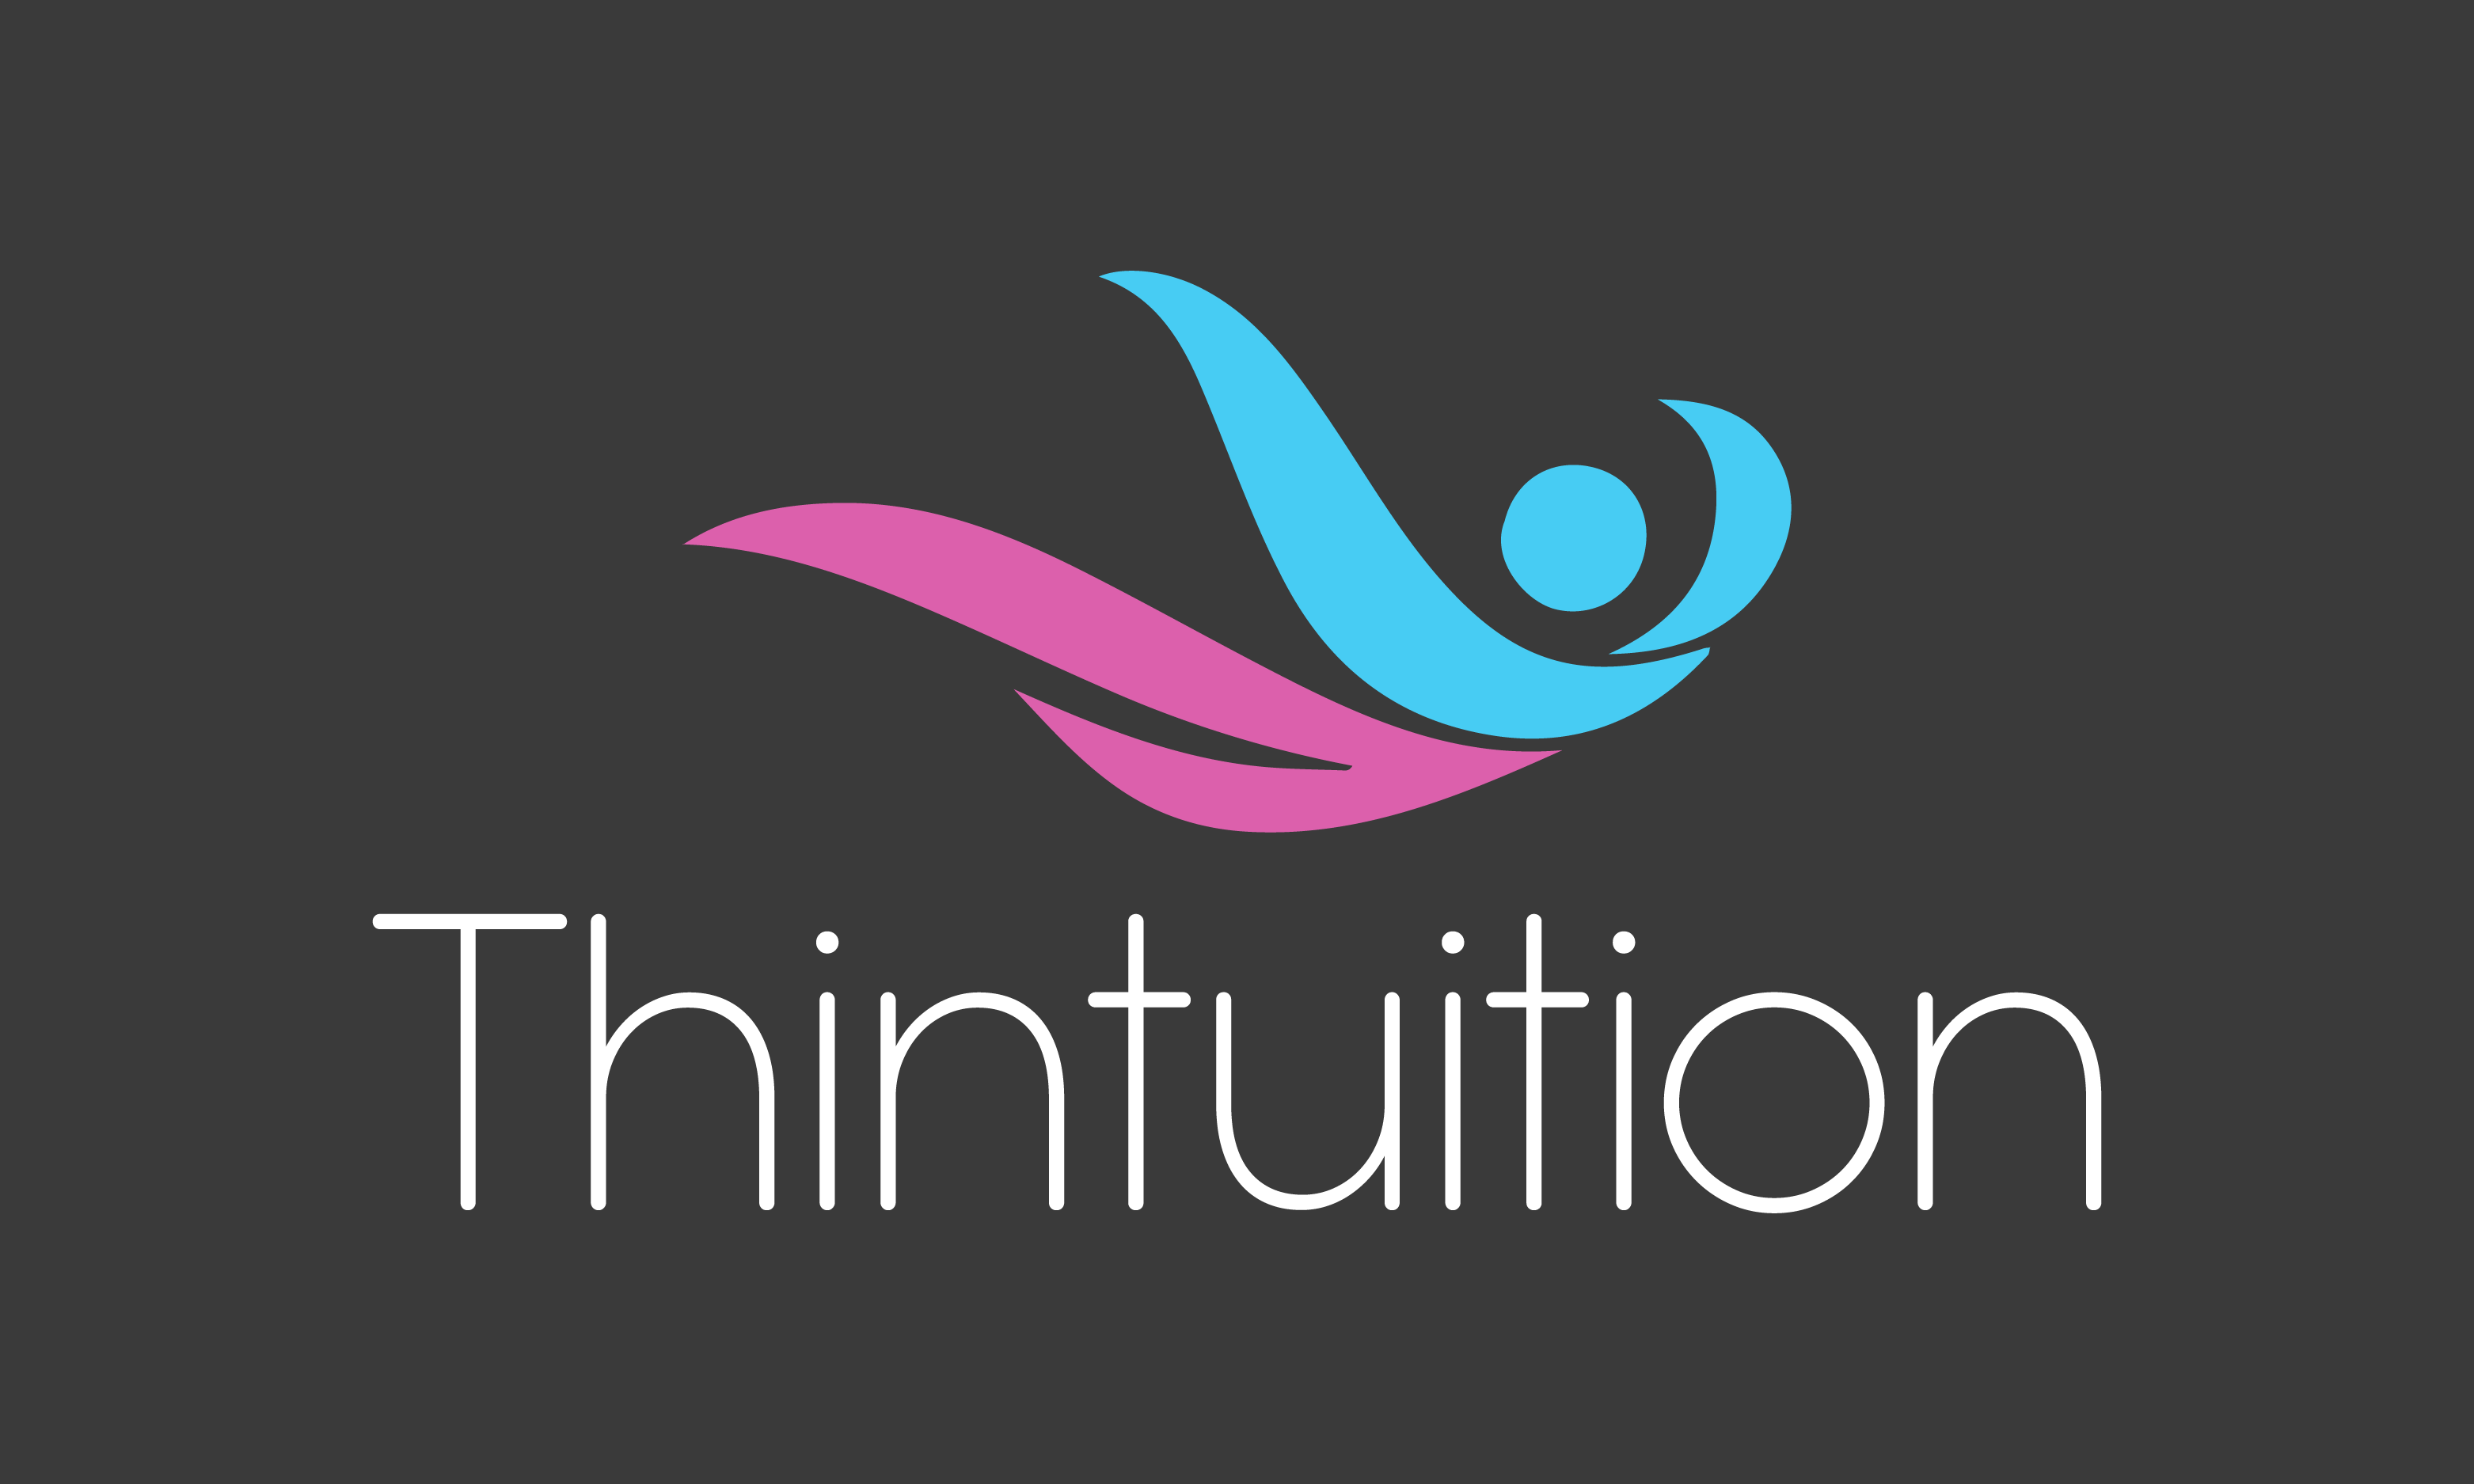 Thintuition.com